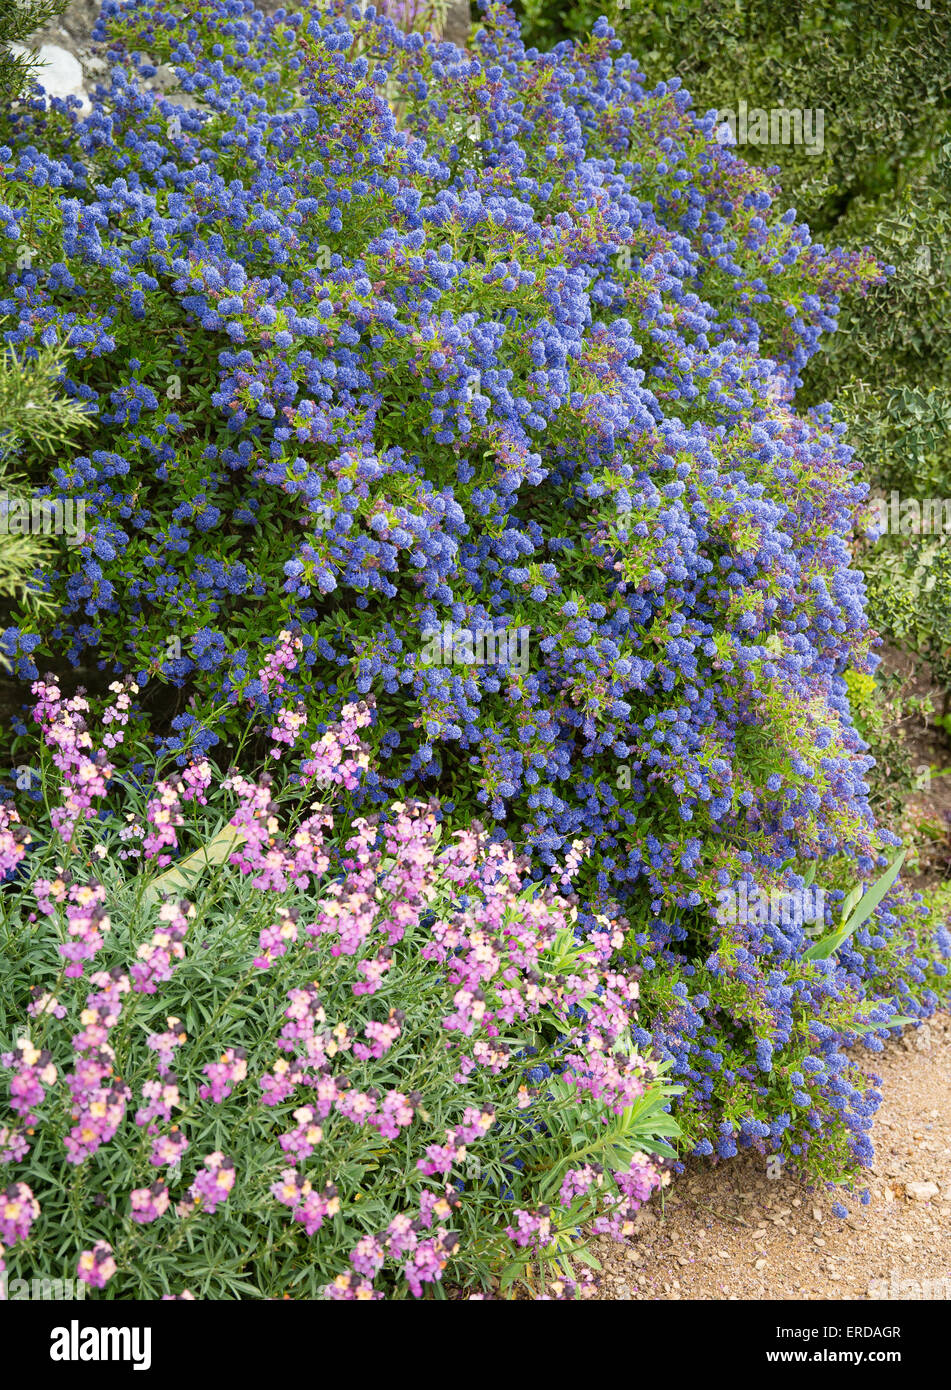 Blue Ceanothus or Californian lilac and pink Erysimum flowers in an English garden flower border - Stock Image